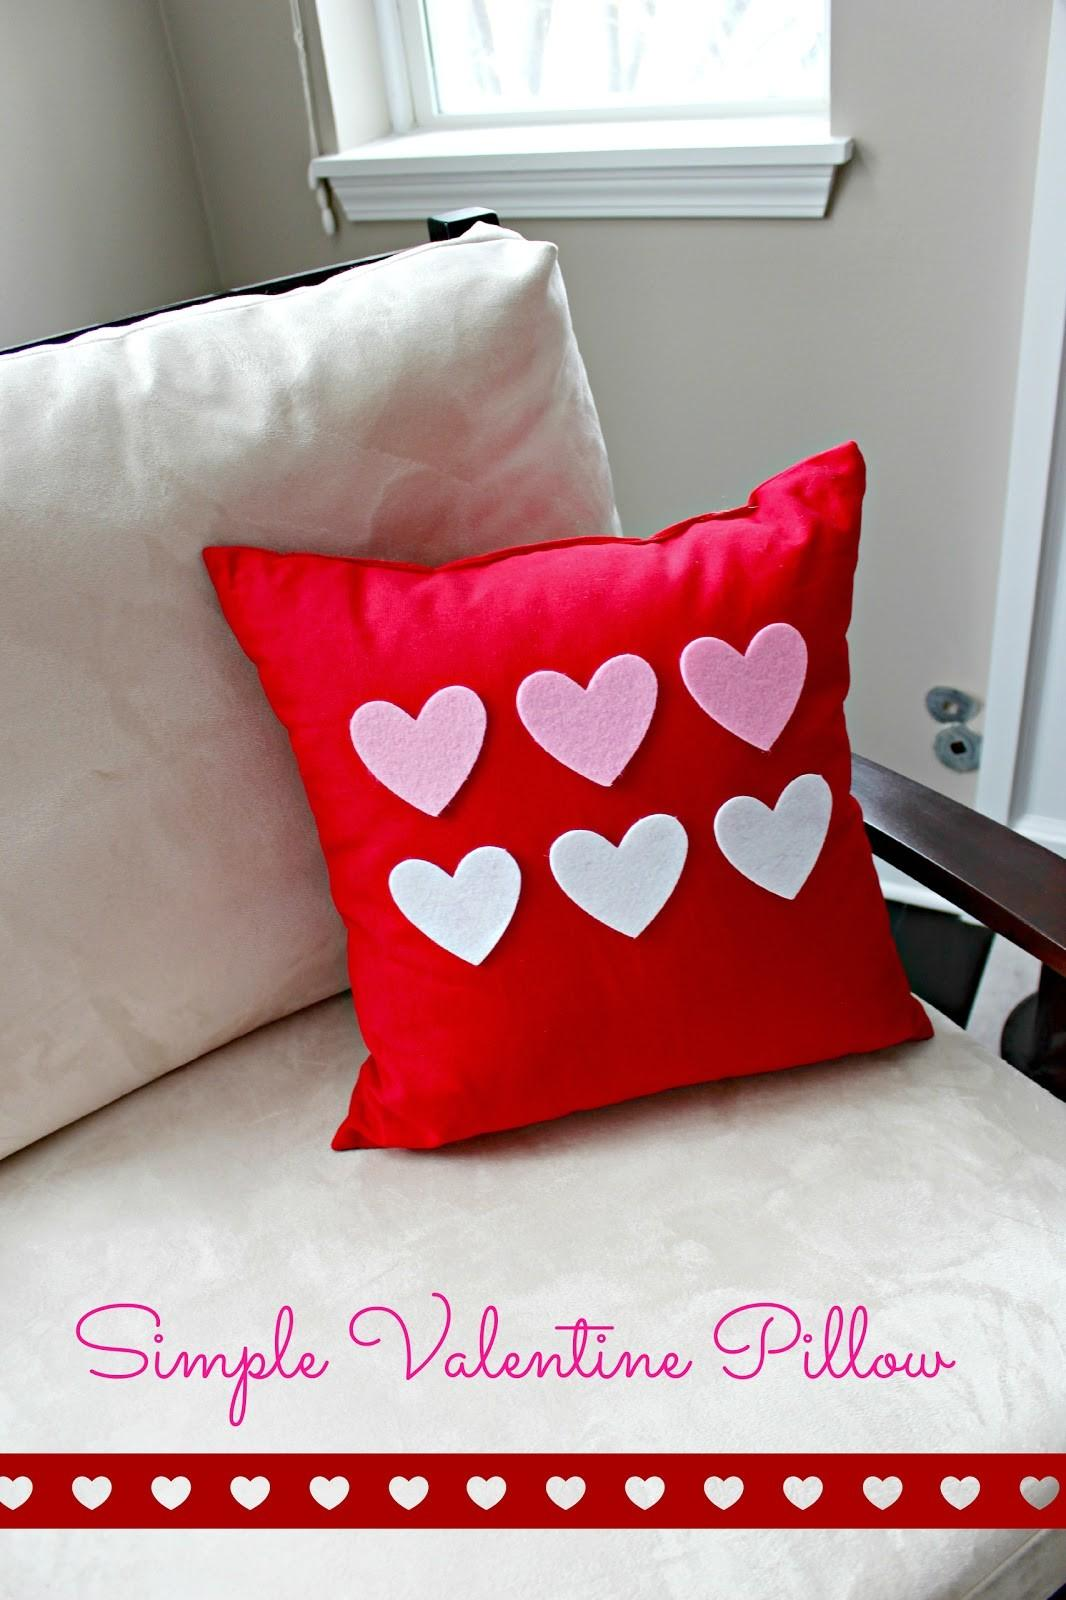 Simple Valentine Pillow Decor Delightfully Noted